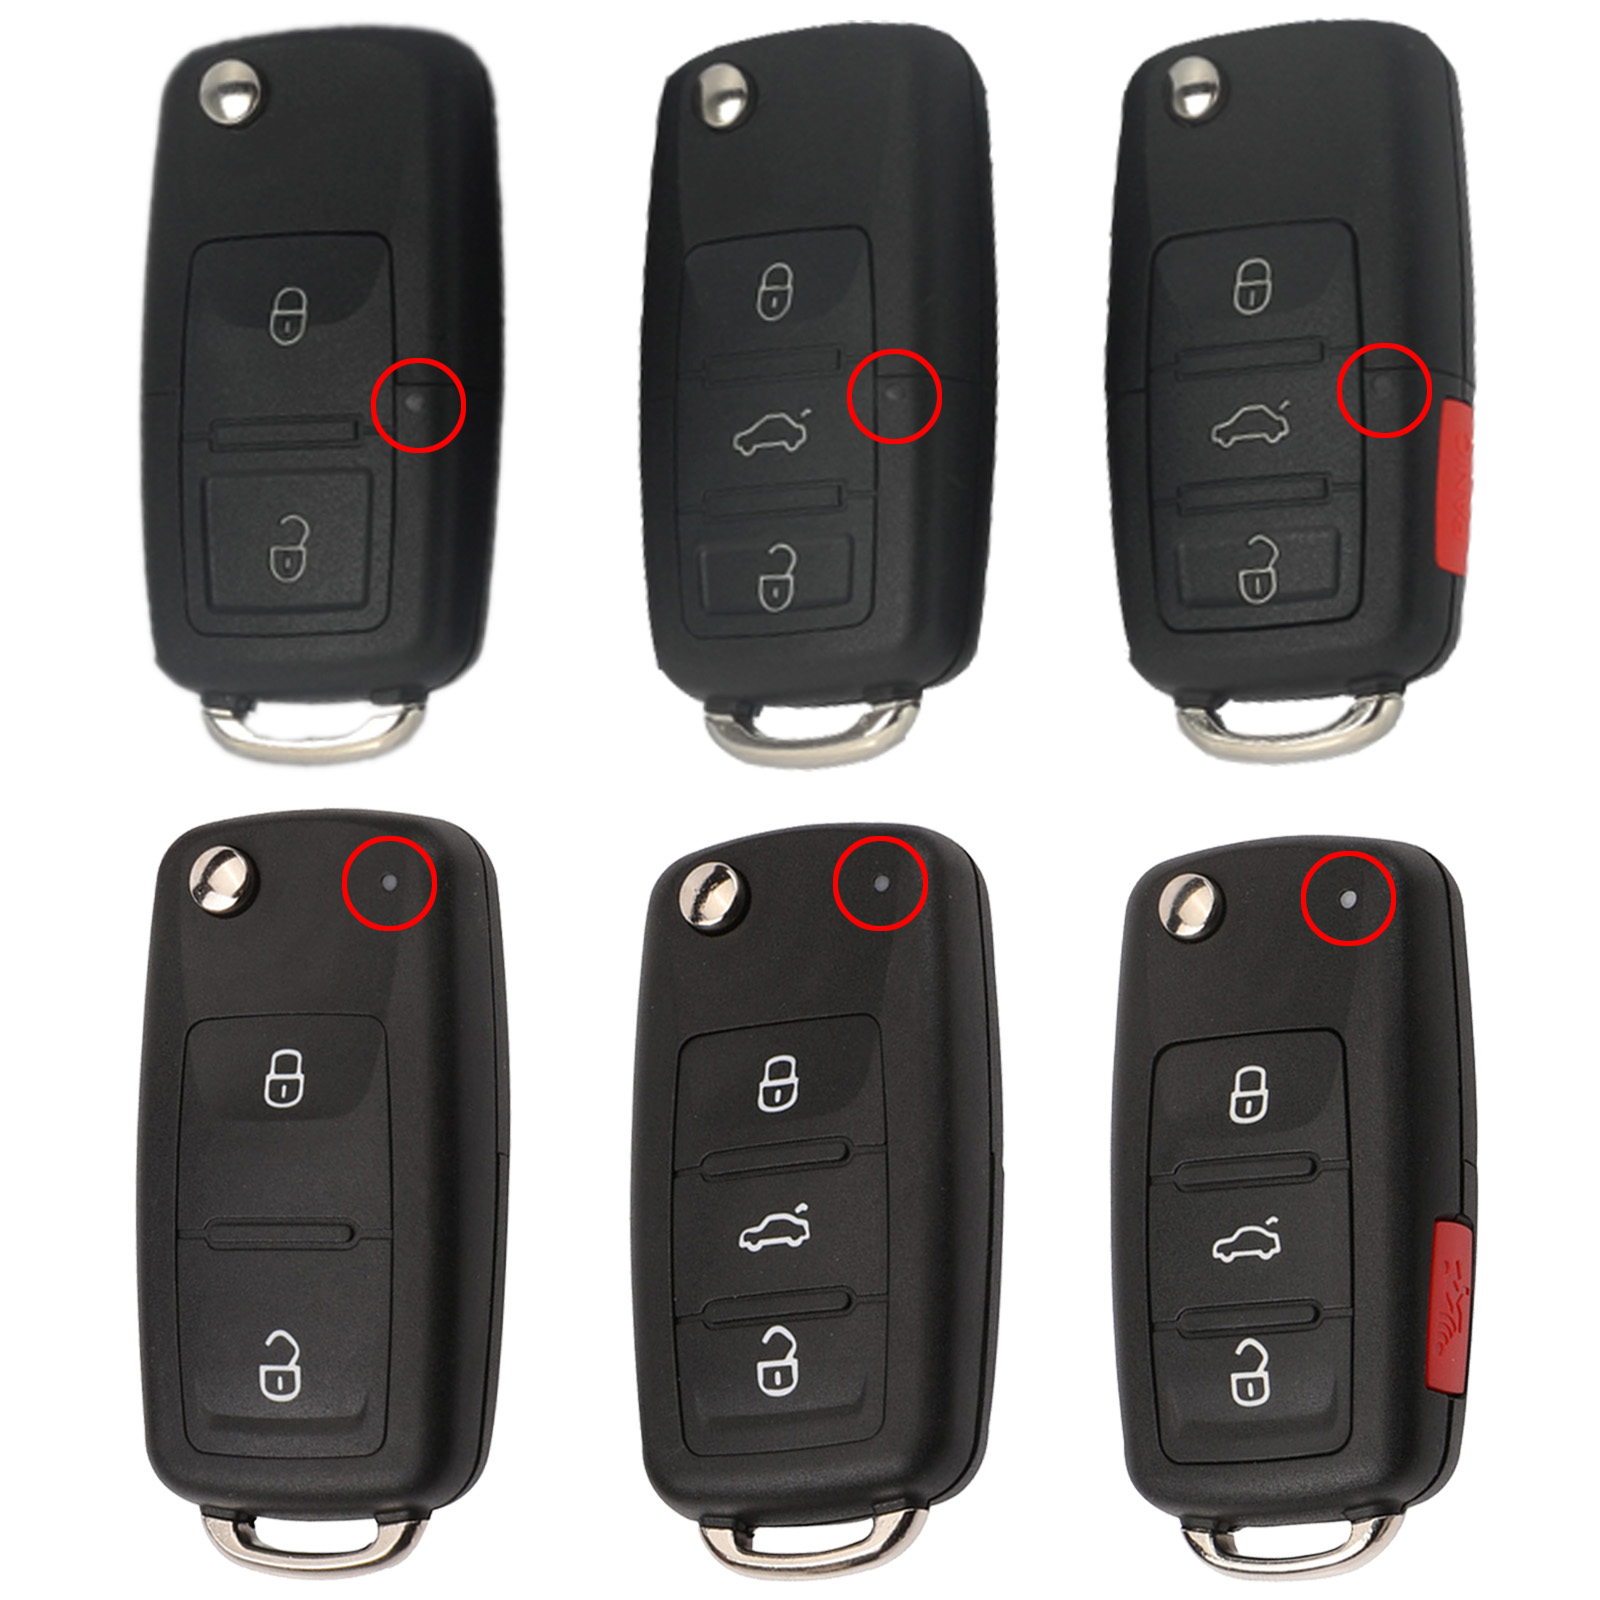 Flip Remote Car Key Shell For VW Passat B5 B6 Golf 4 5 7 Touran Bora Beetle Sagitar Skoda Octavia Fabia Leon 2/3/4B Switchblade(China)